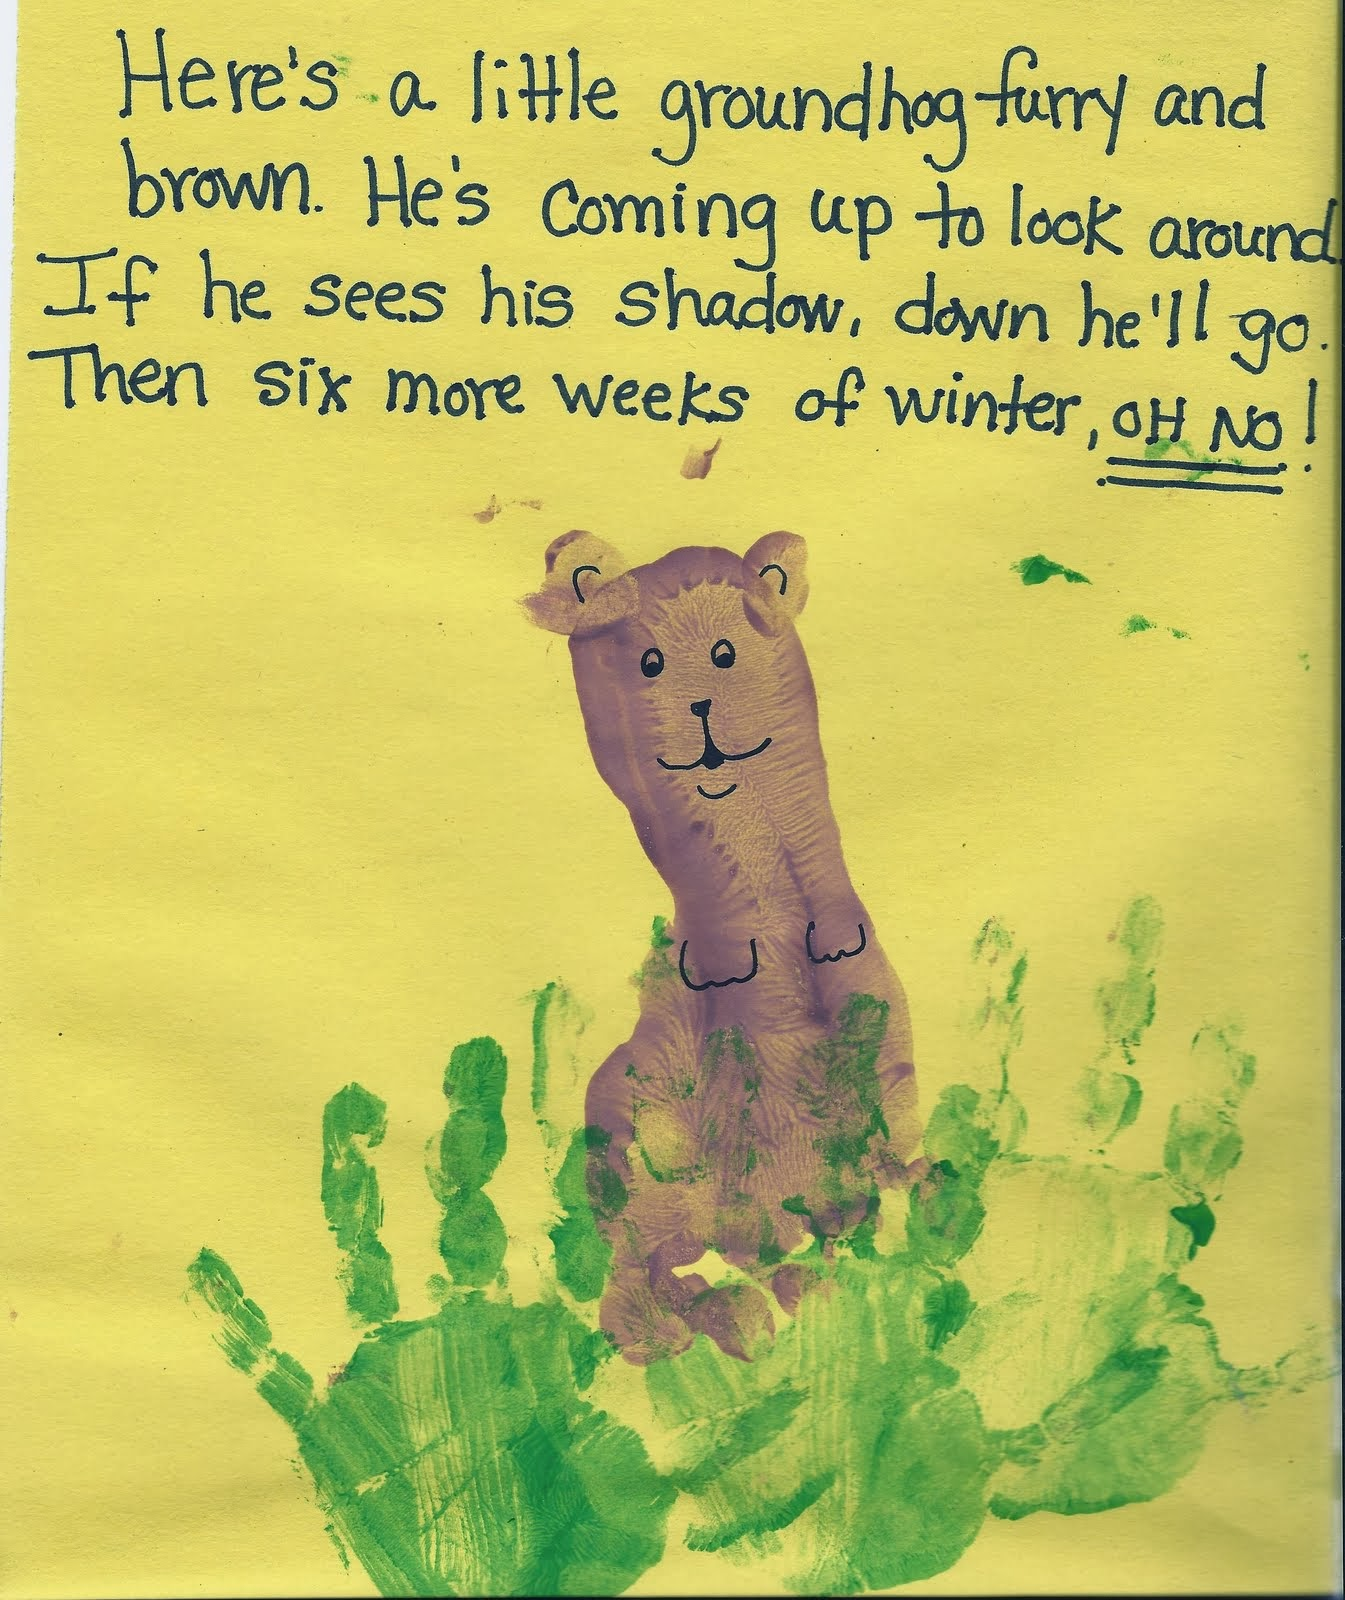 Groundhog Day Crafts For Kids Crafty Morning